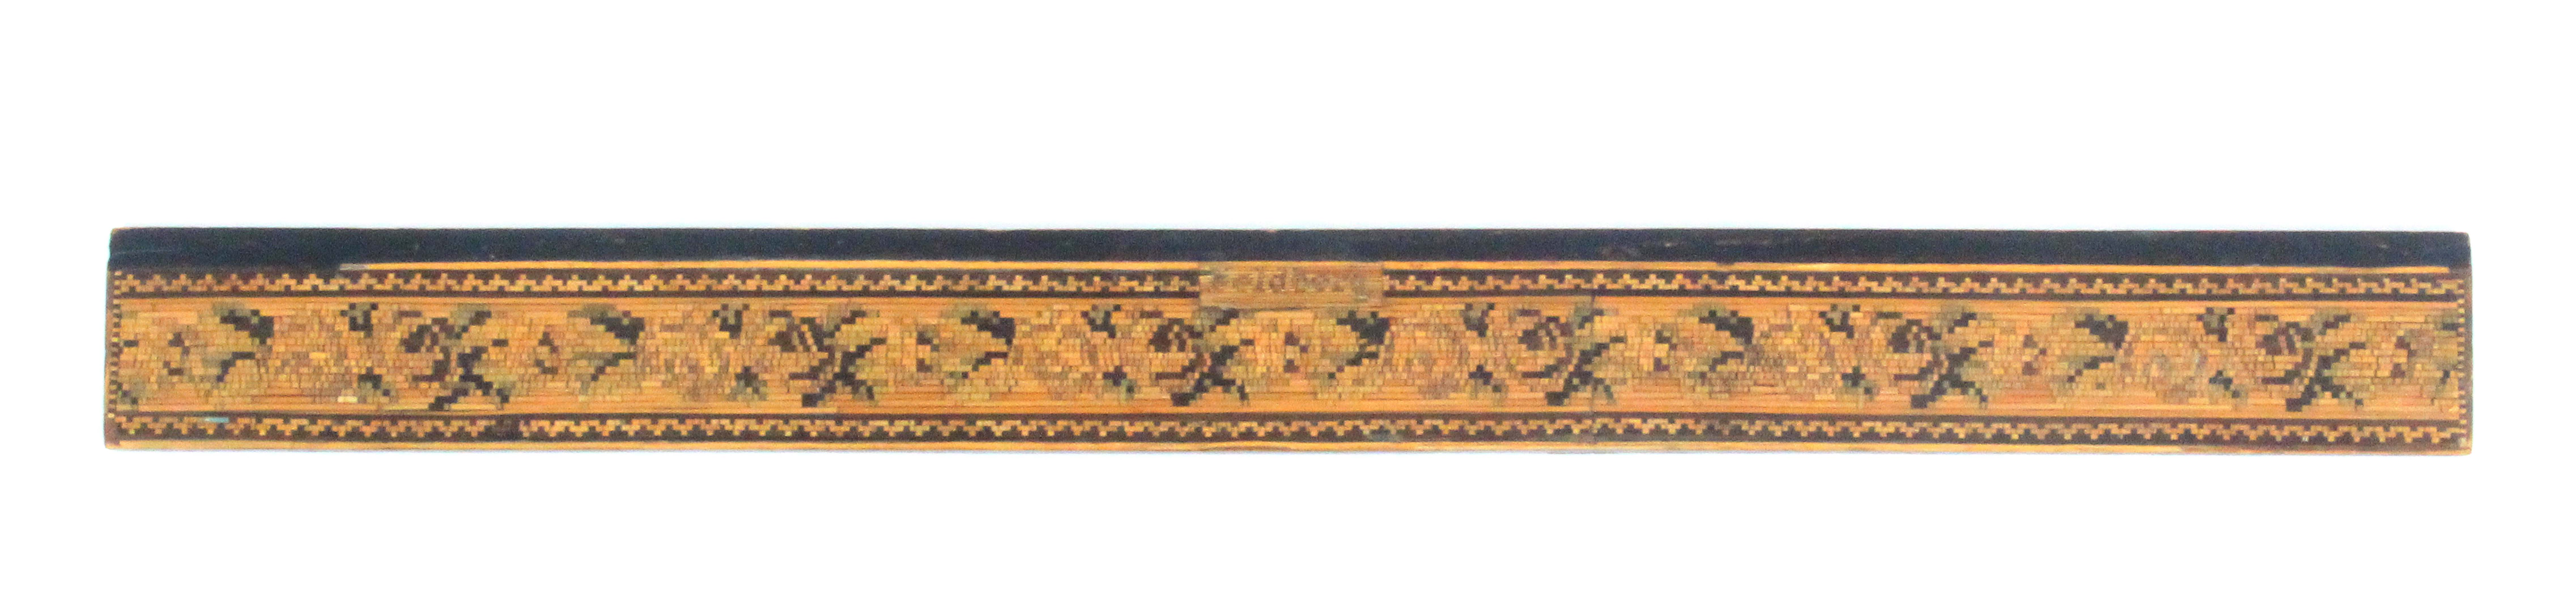 An unusual 19th Century split and coloured straw work ruler, decorated with a band of flowers